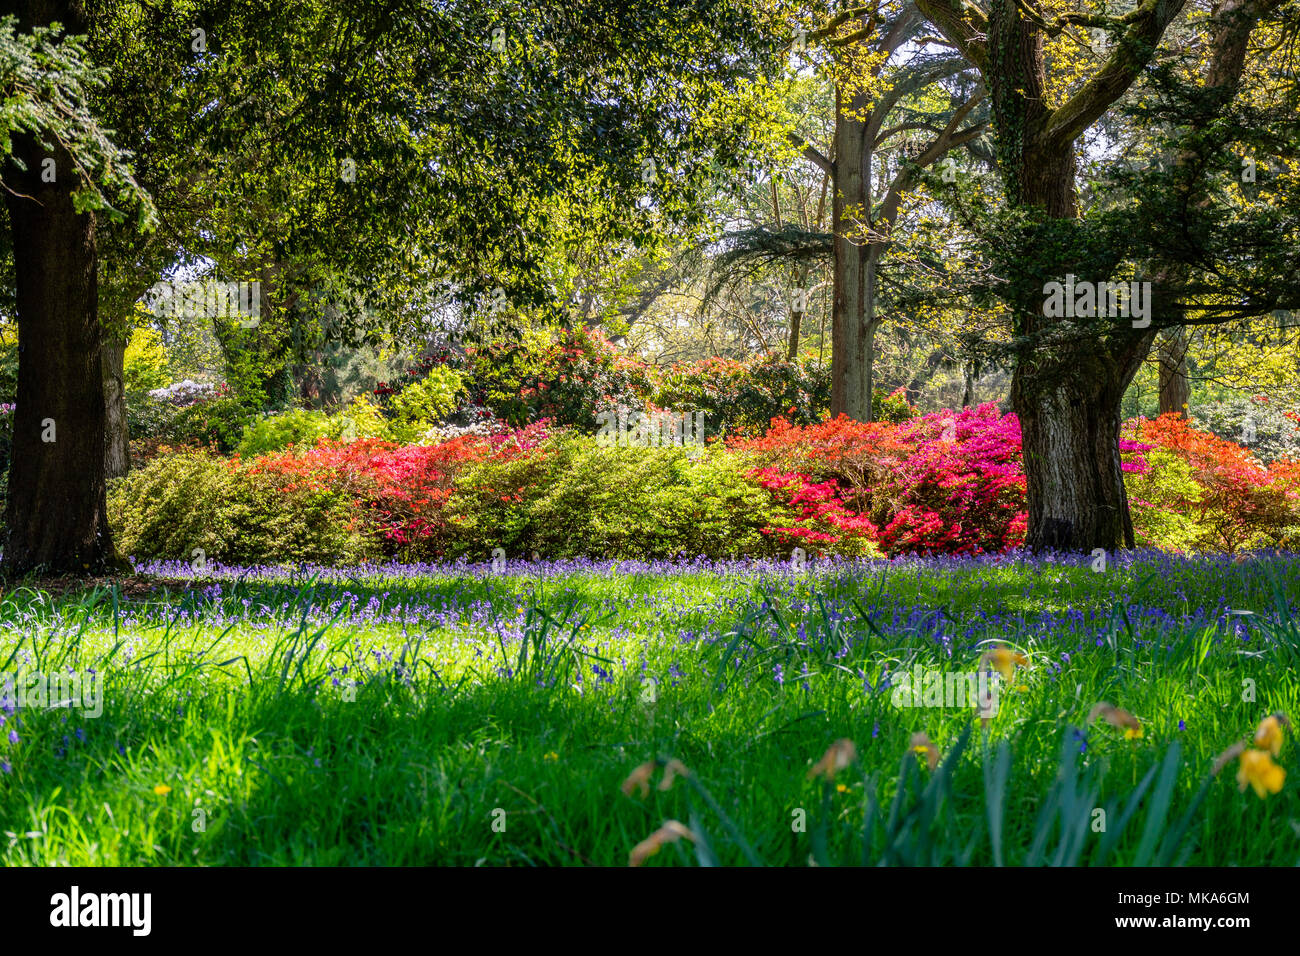 Colourful plants during spring in the grounds of Exbury gardens, a large woodland garden belonging to the Rothschild family in Hampshire, England, UK - Stock Image